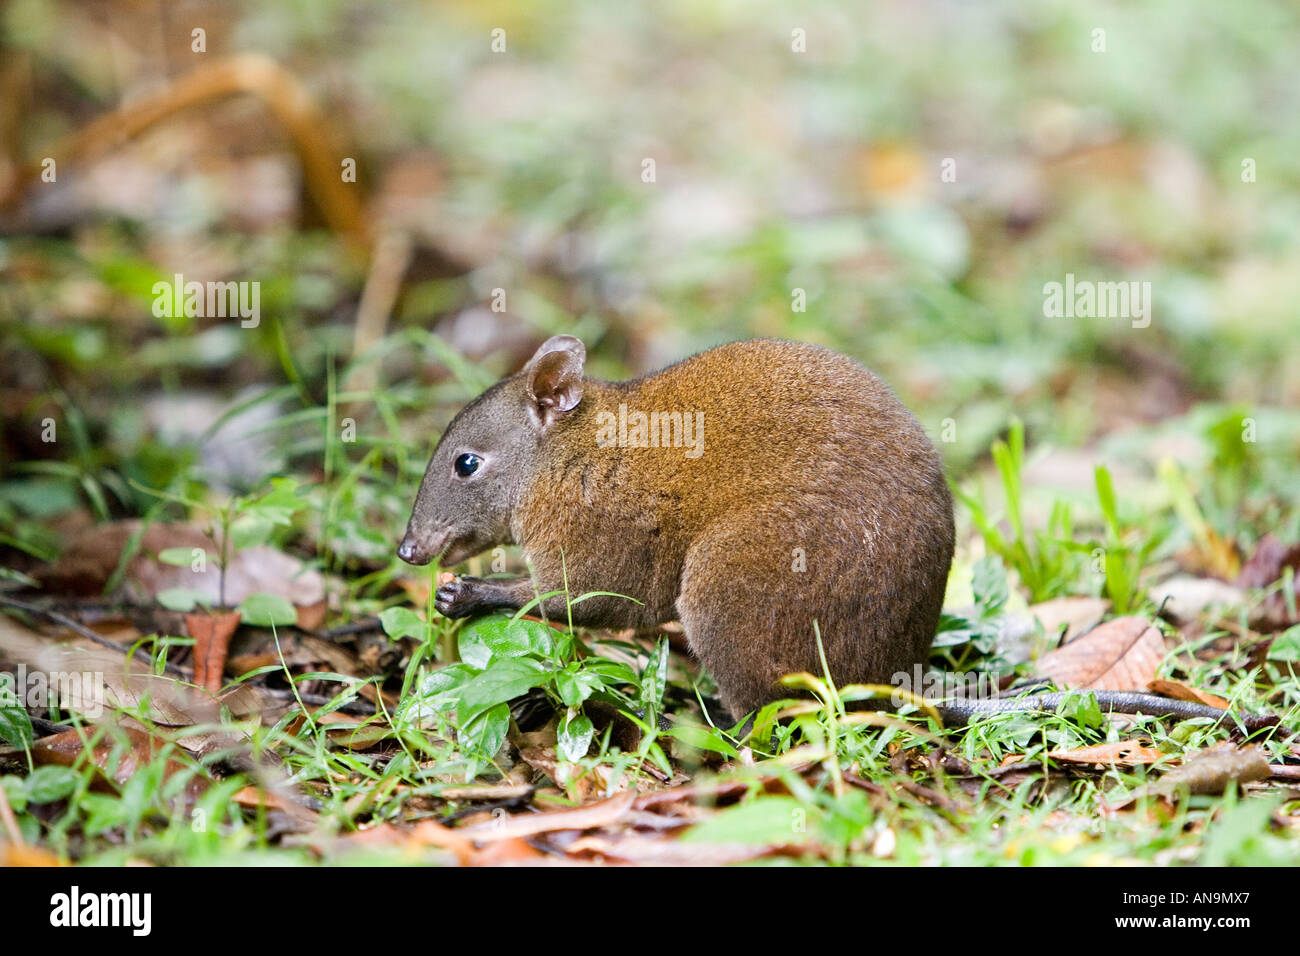 Forest Dwelling Species Stock Photos Amp Forest Dwelling